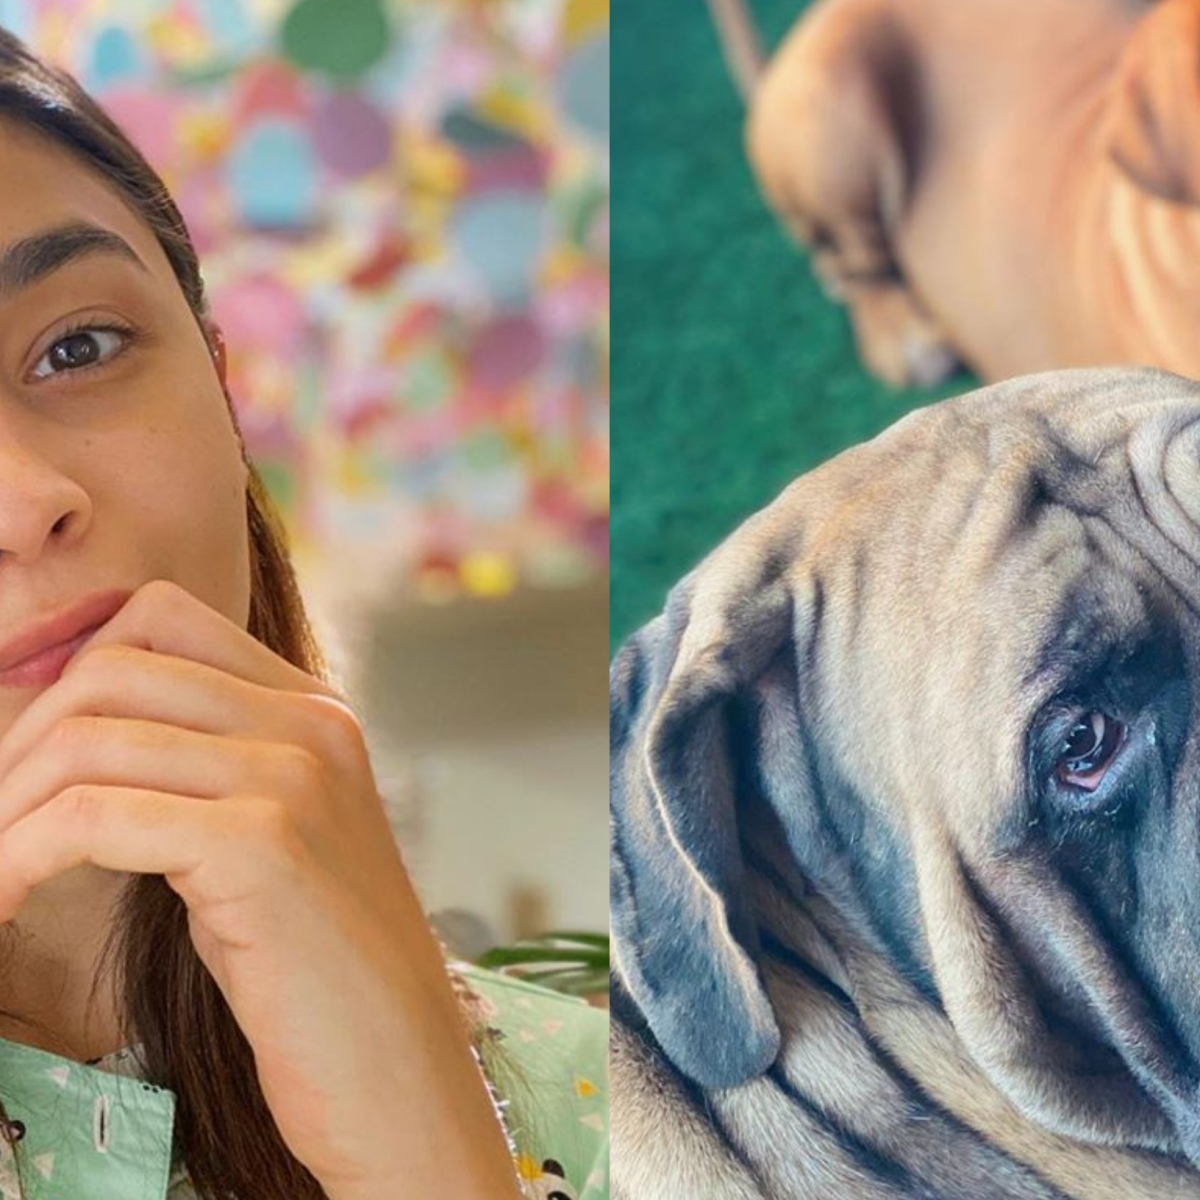 Alia Bhatt shares 'pawsome' pics of beau Ranbir Kapoor's dogs as she shows off her photography skills